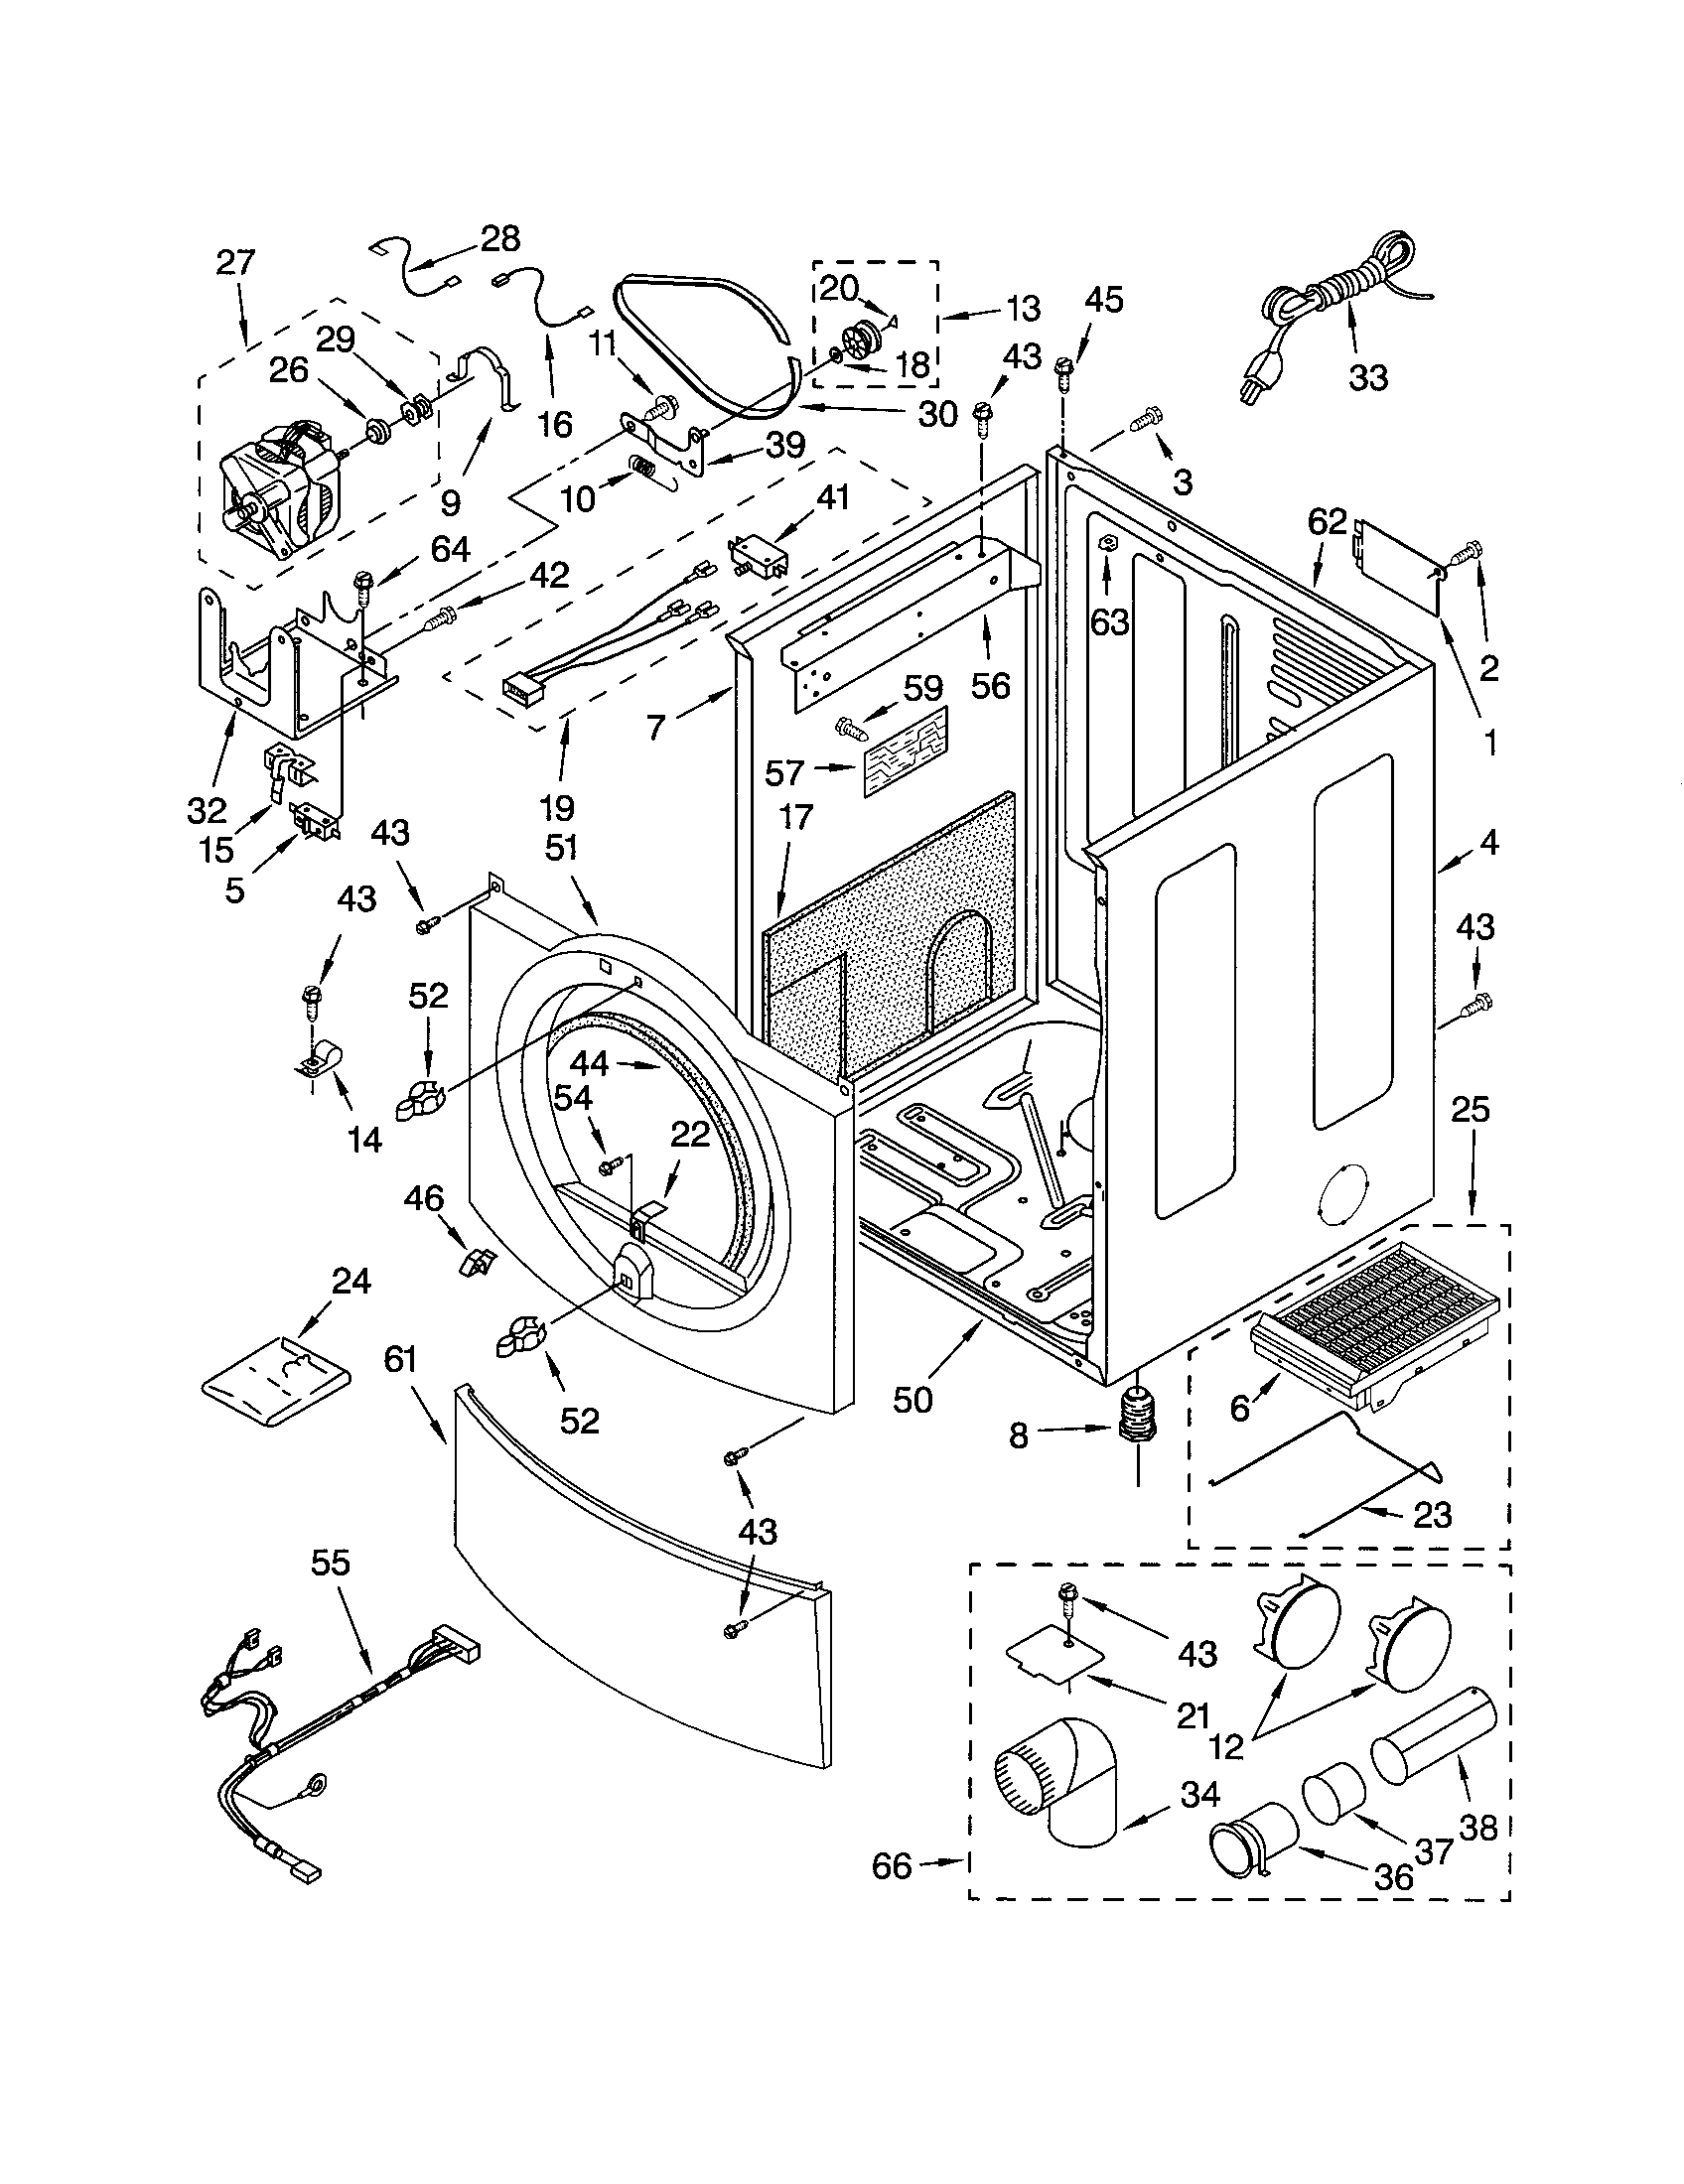 CABINET Diagram & Parts List for Model 11092832100 Kenmore